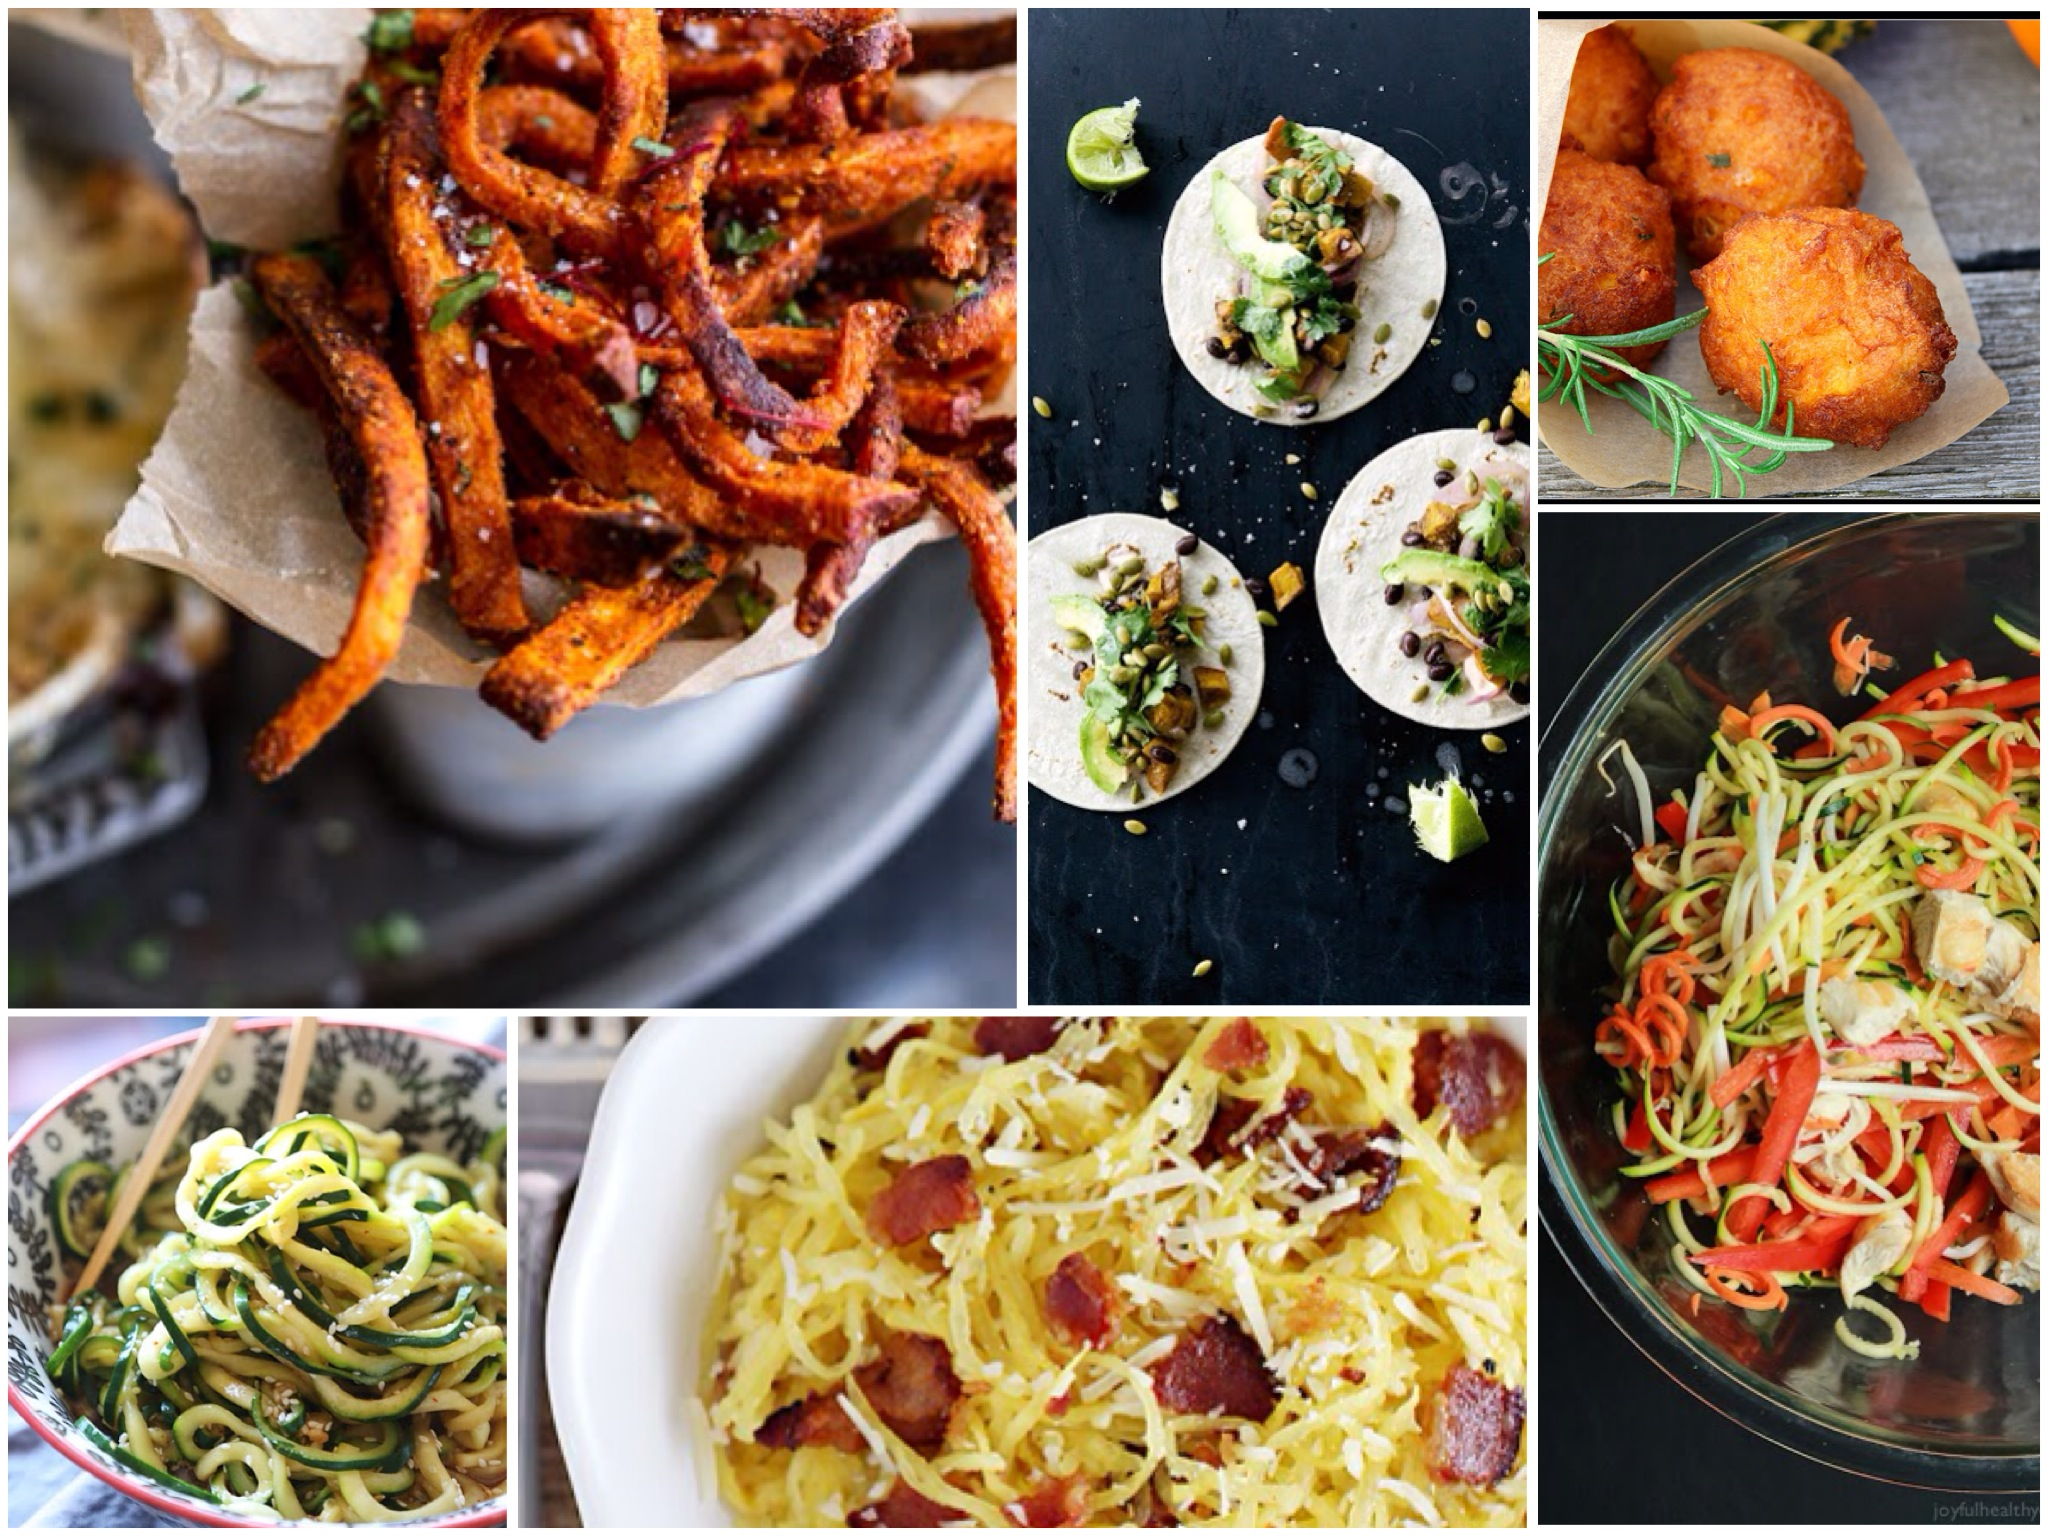 Weeknight dinner reboot 4 non traditional foods 12 delicious meals weeknight dinners can quickly become rushed meals of the old standbys of pasta pizza and grilled cheese sandwiches with nary a vegetable in sight forumfinder Image collections